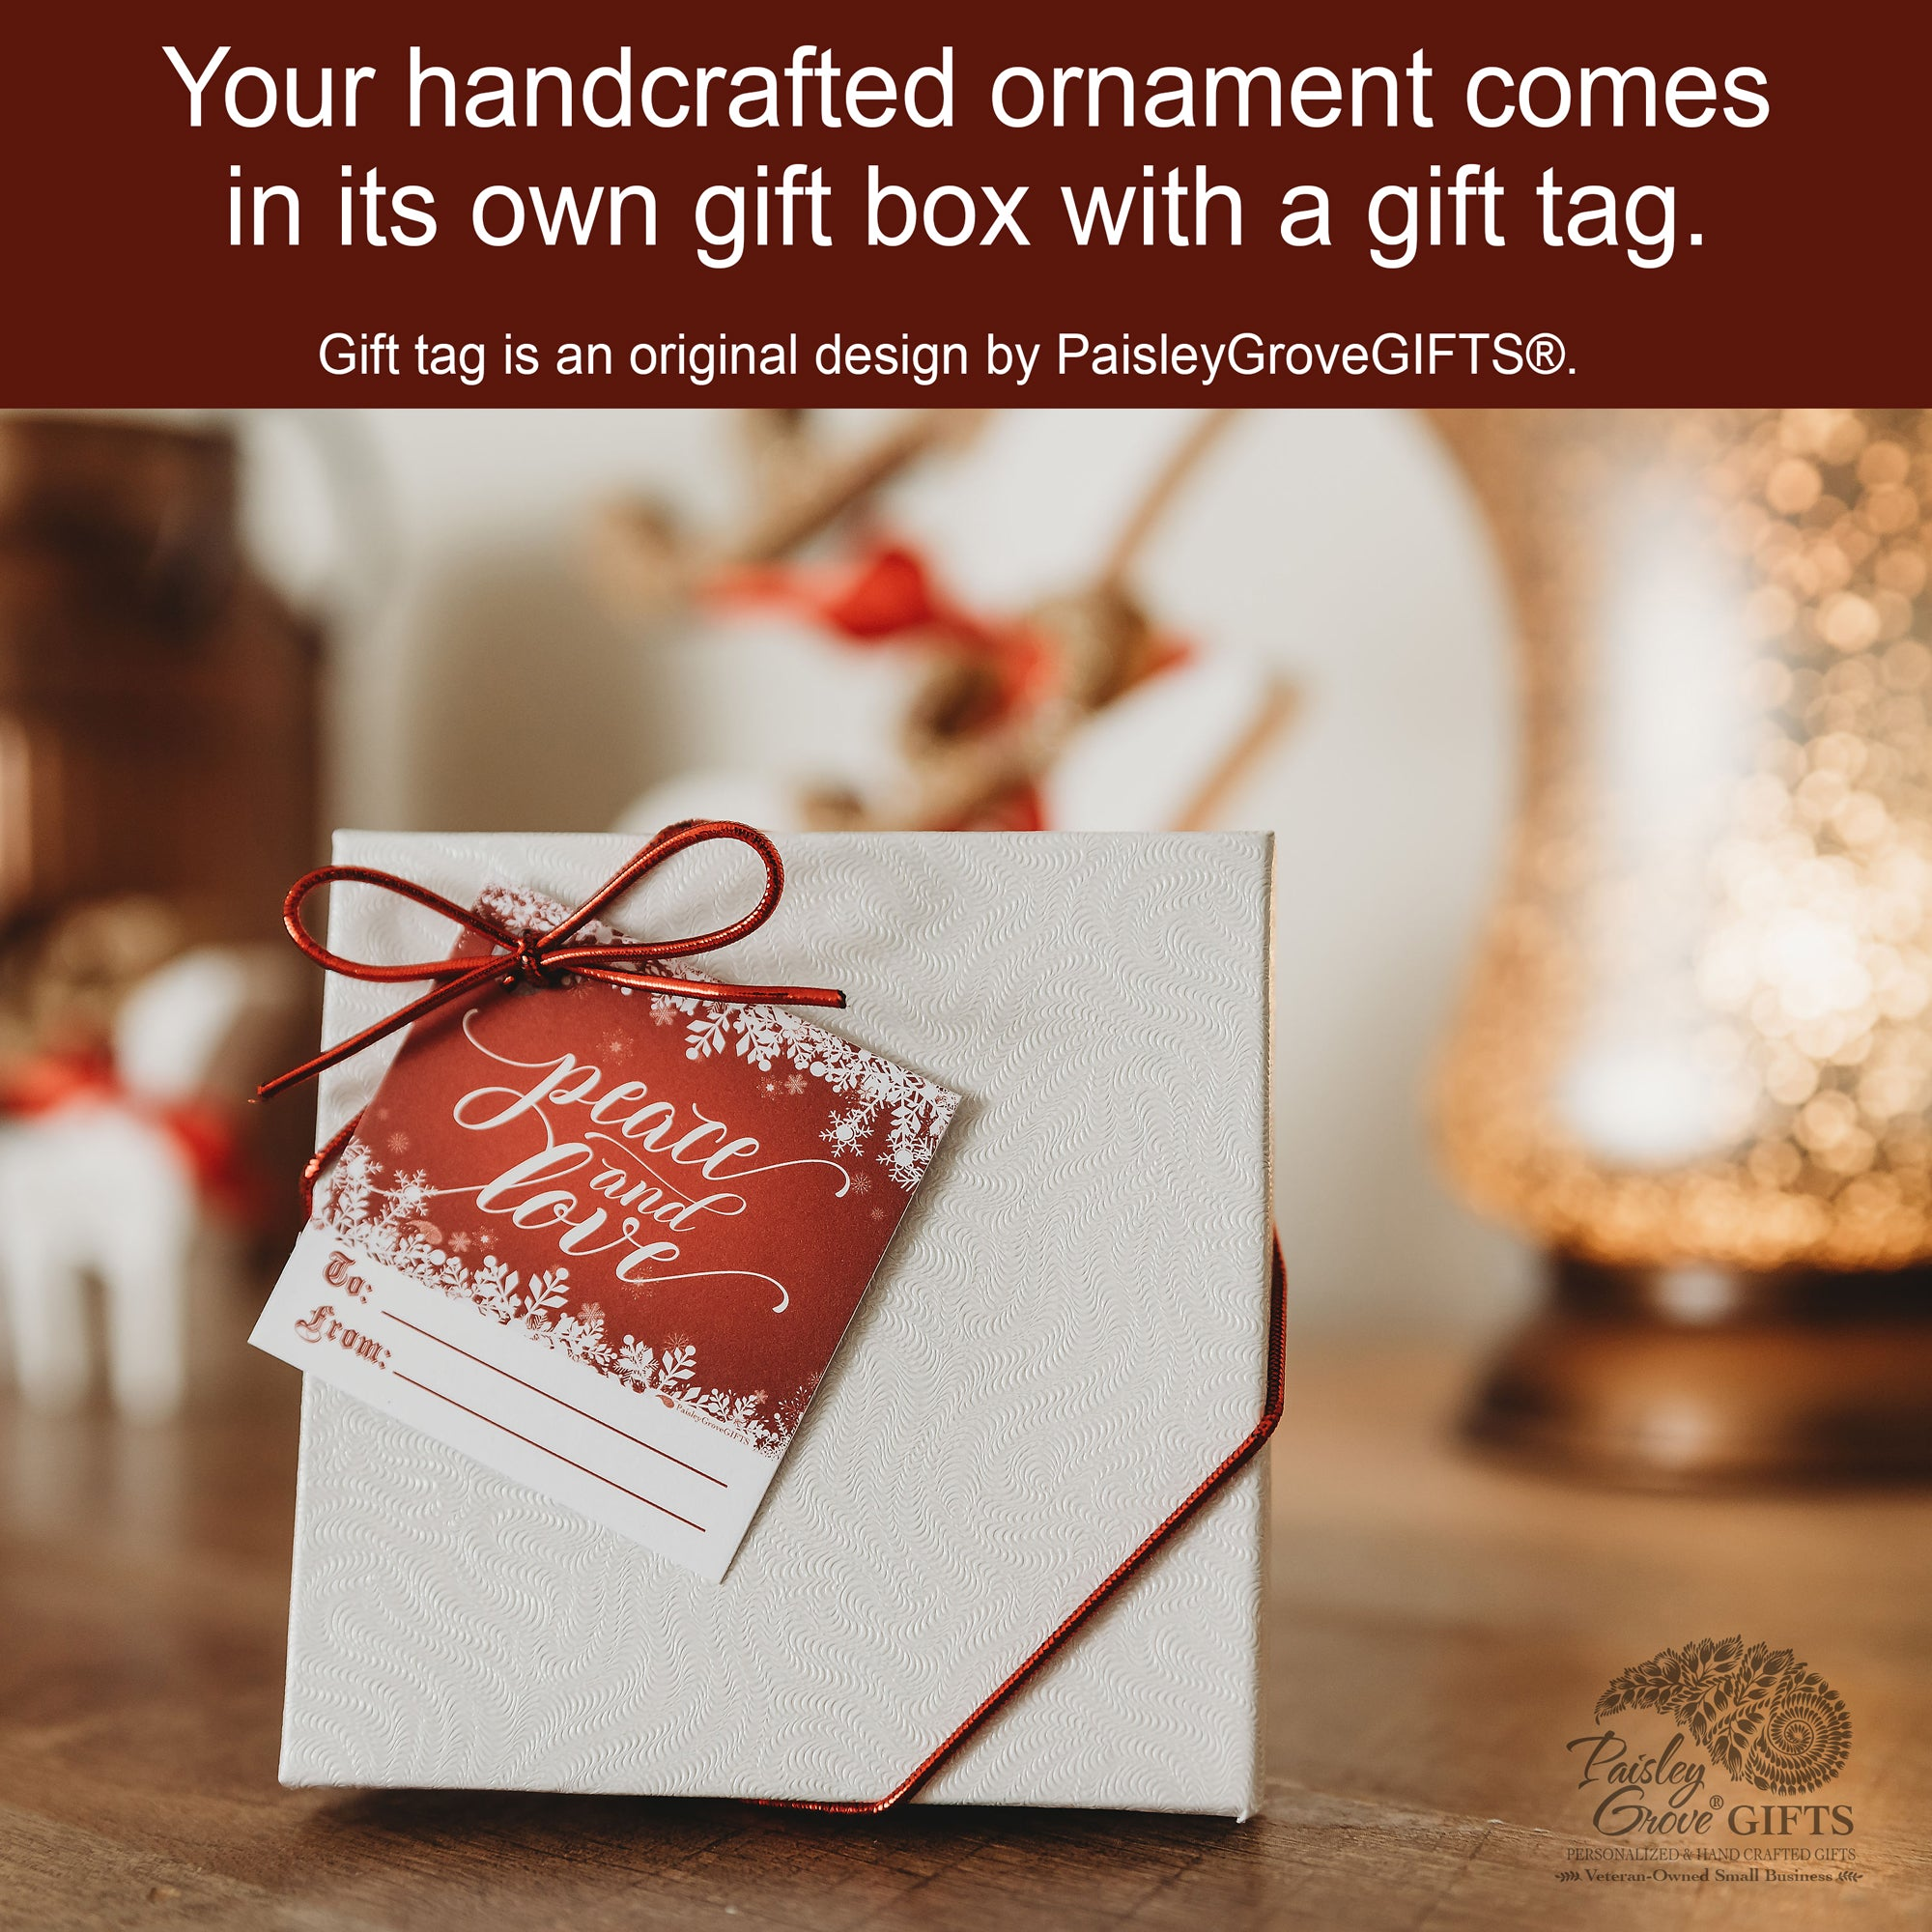 CopyrightPaisleyGroveGIFTS S502h Personalized 1st Home Holiday Ornament comes with a free gift box and gift tag